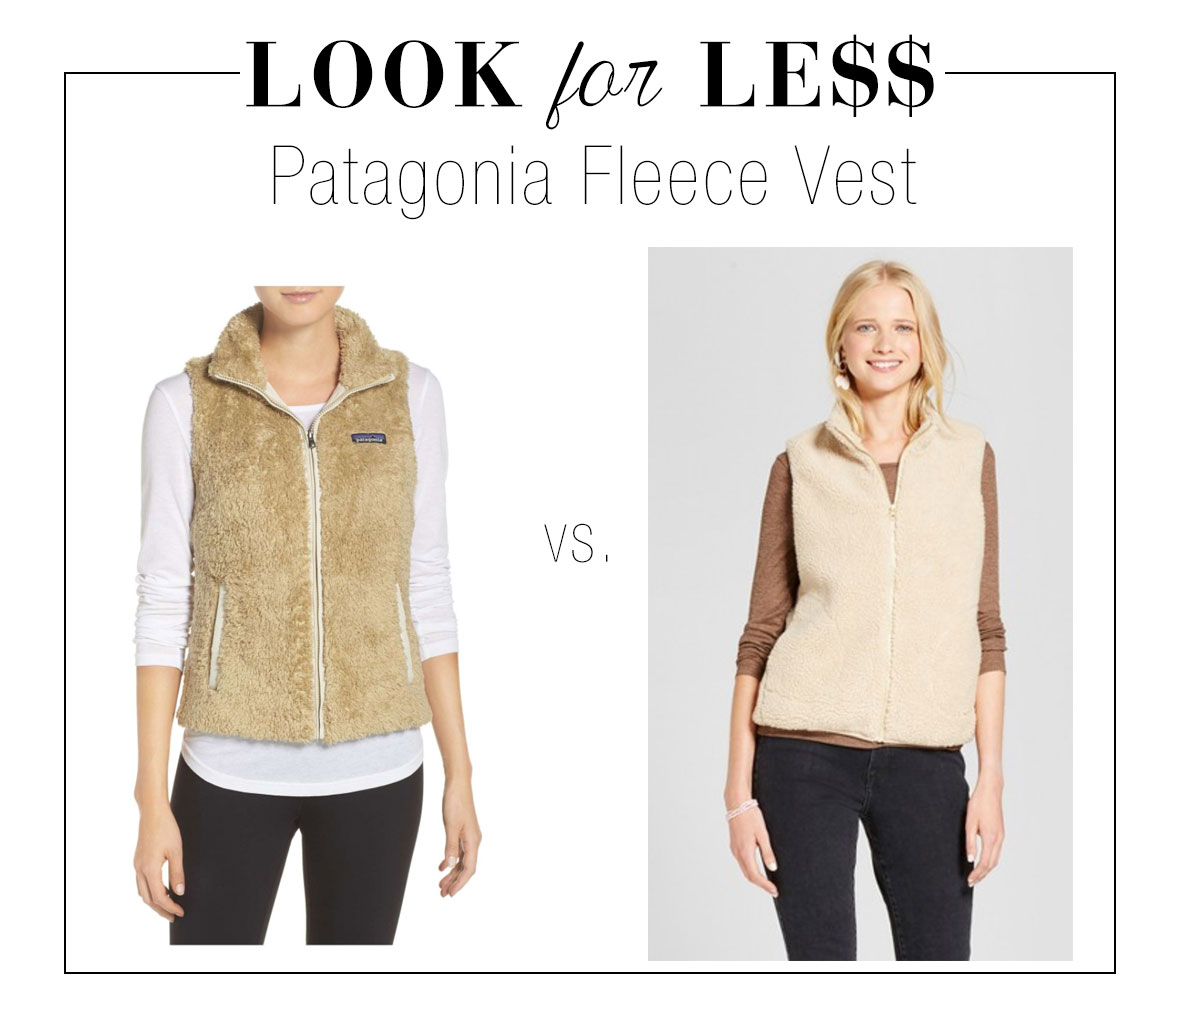 Patagonia fleece vest look for less